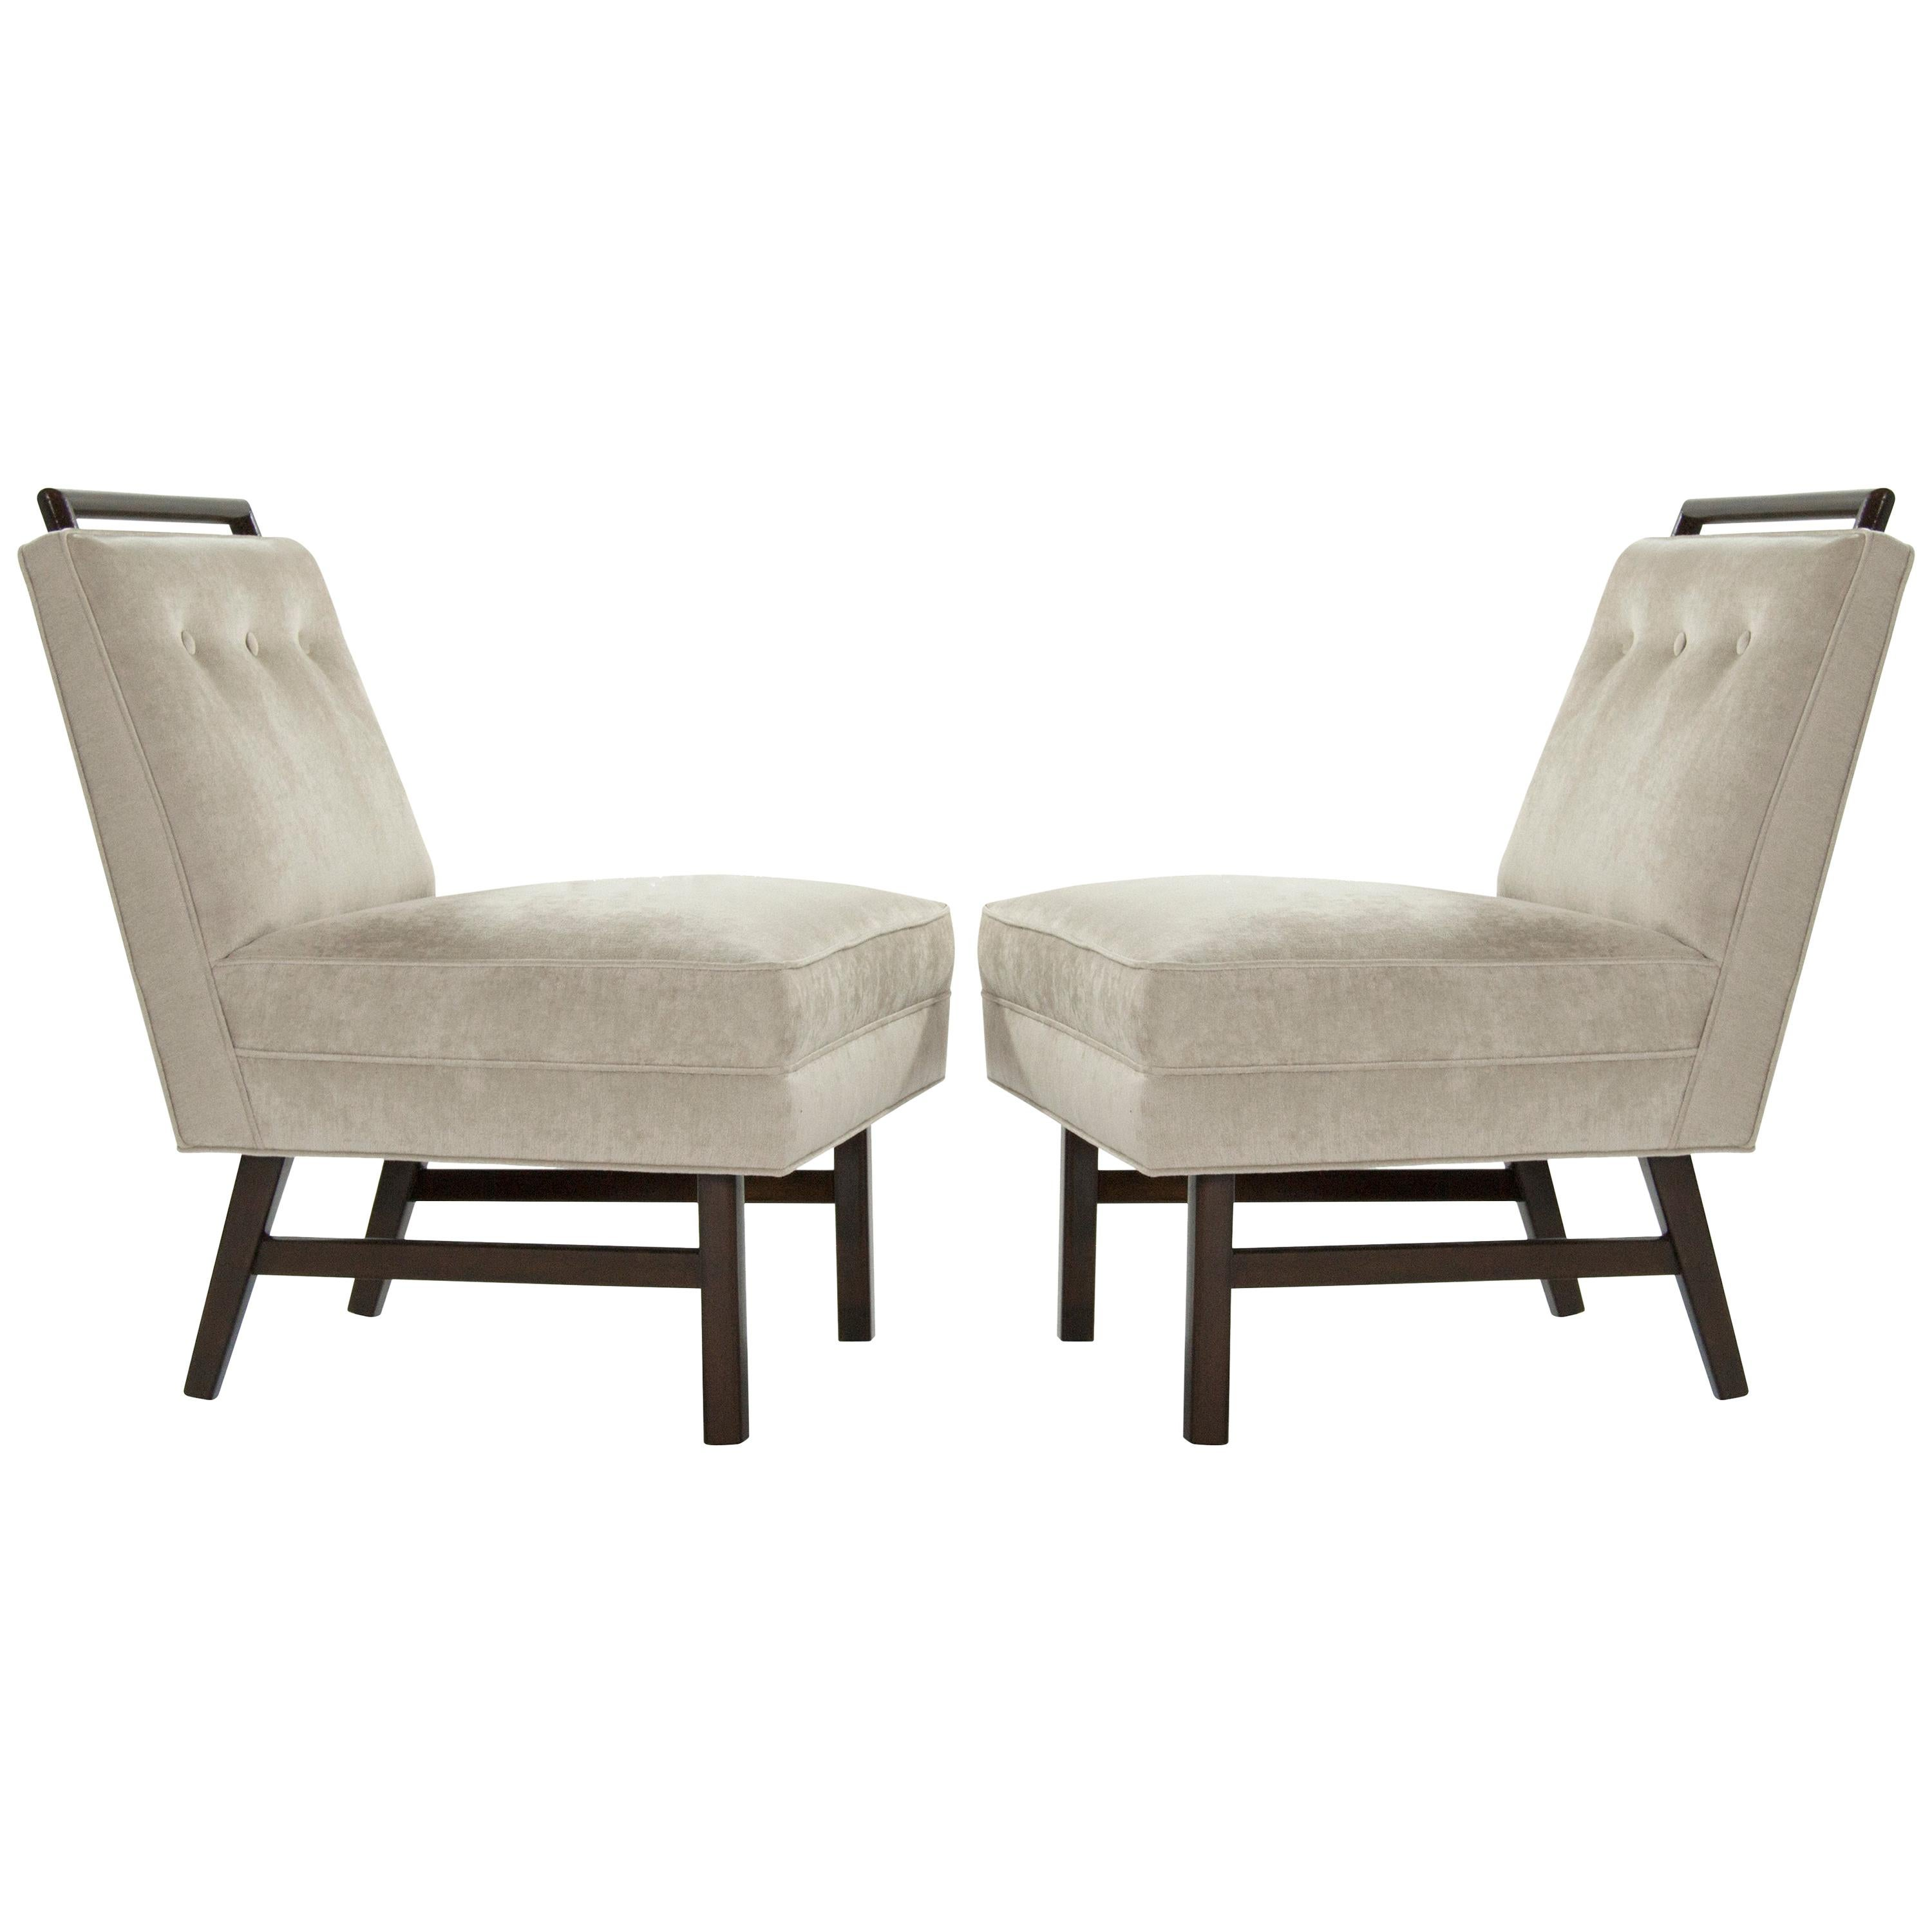 Pair of Petite Slipper Chairs in the Style of Harvey Probber